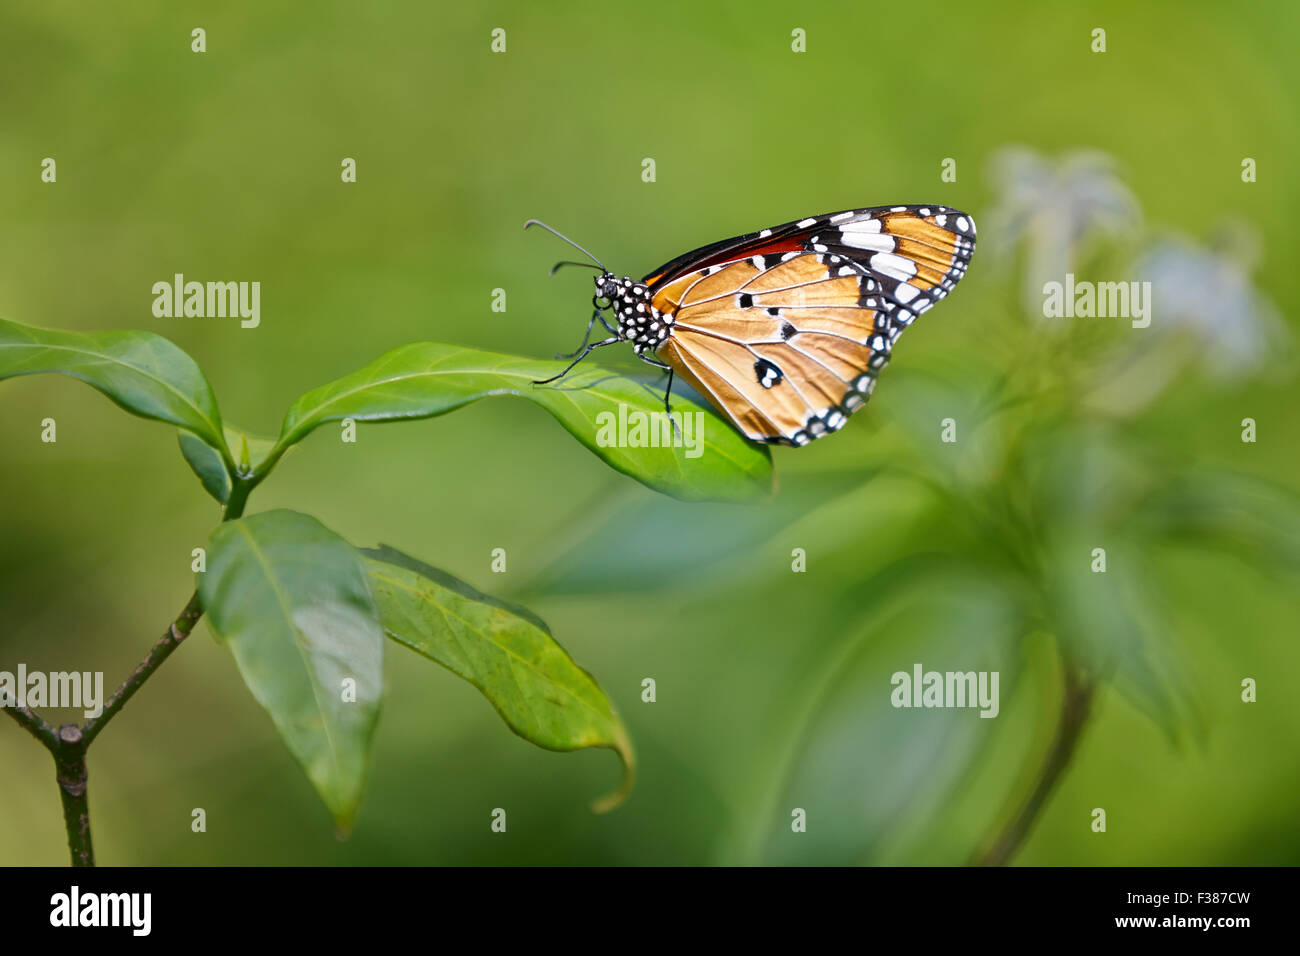 Plain Tiger Butterfly. Scientific name: Danaus chrysippus. Banteay Srei Butterfly Centre, Siem Reap Province, Cambodia. - Stock Image